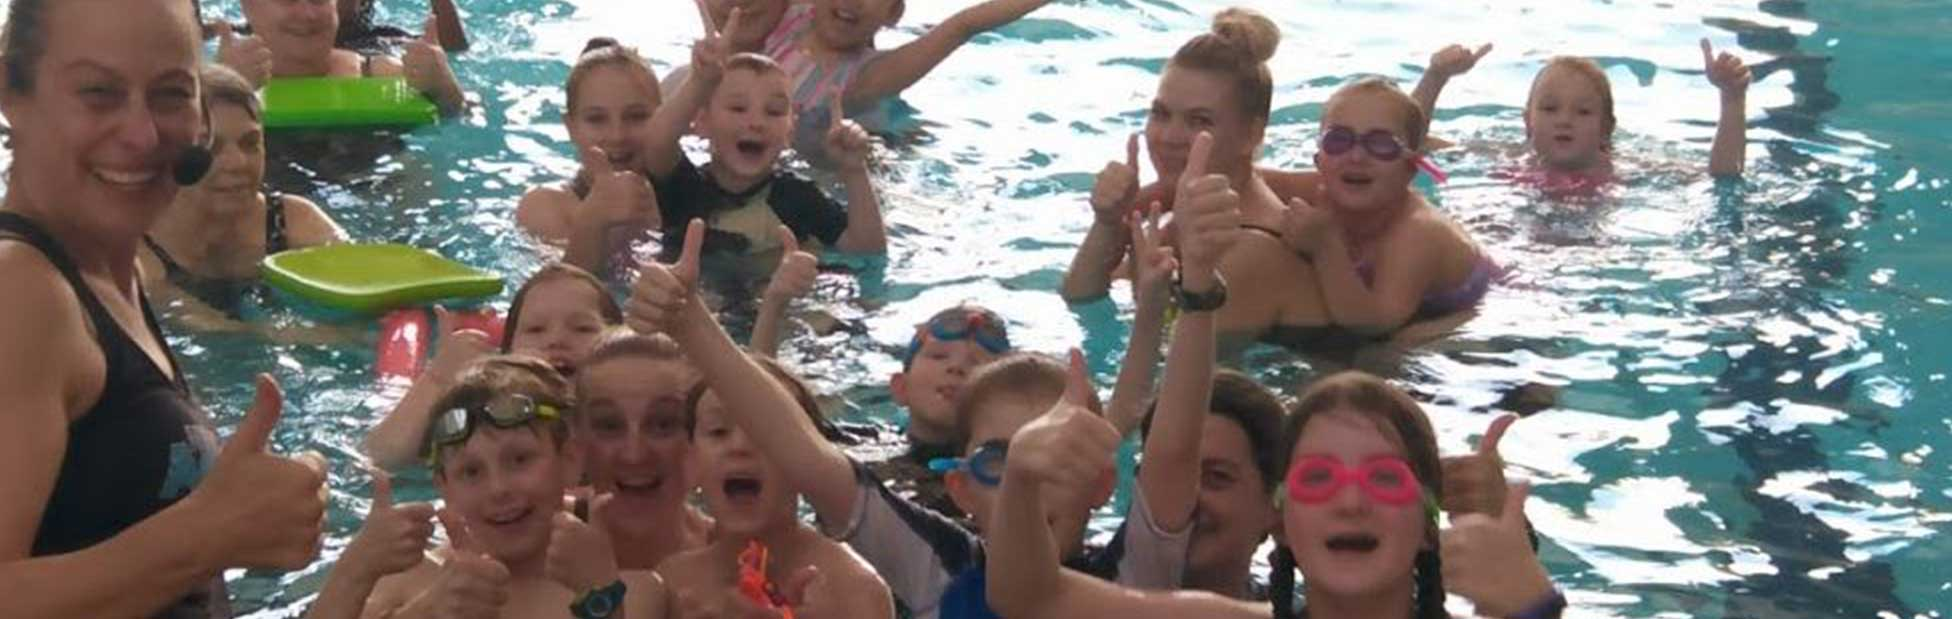 Swim instructor and children in the pool